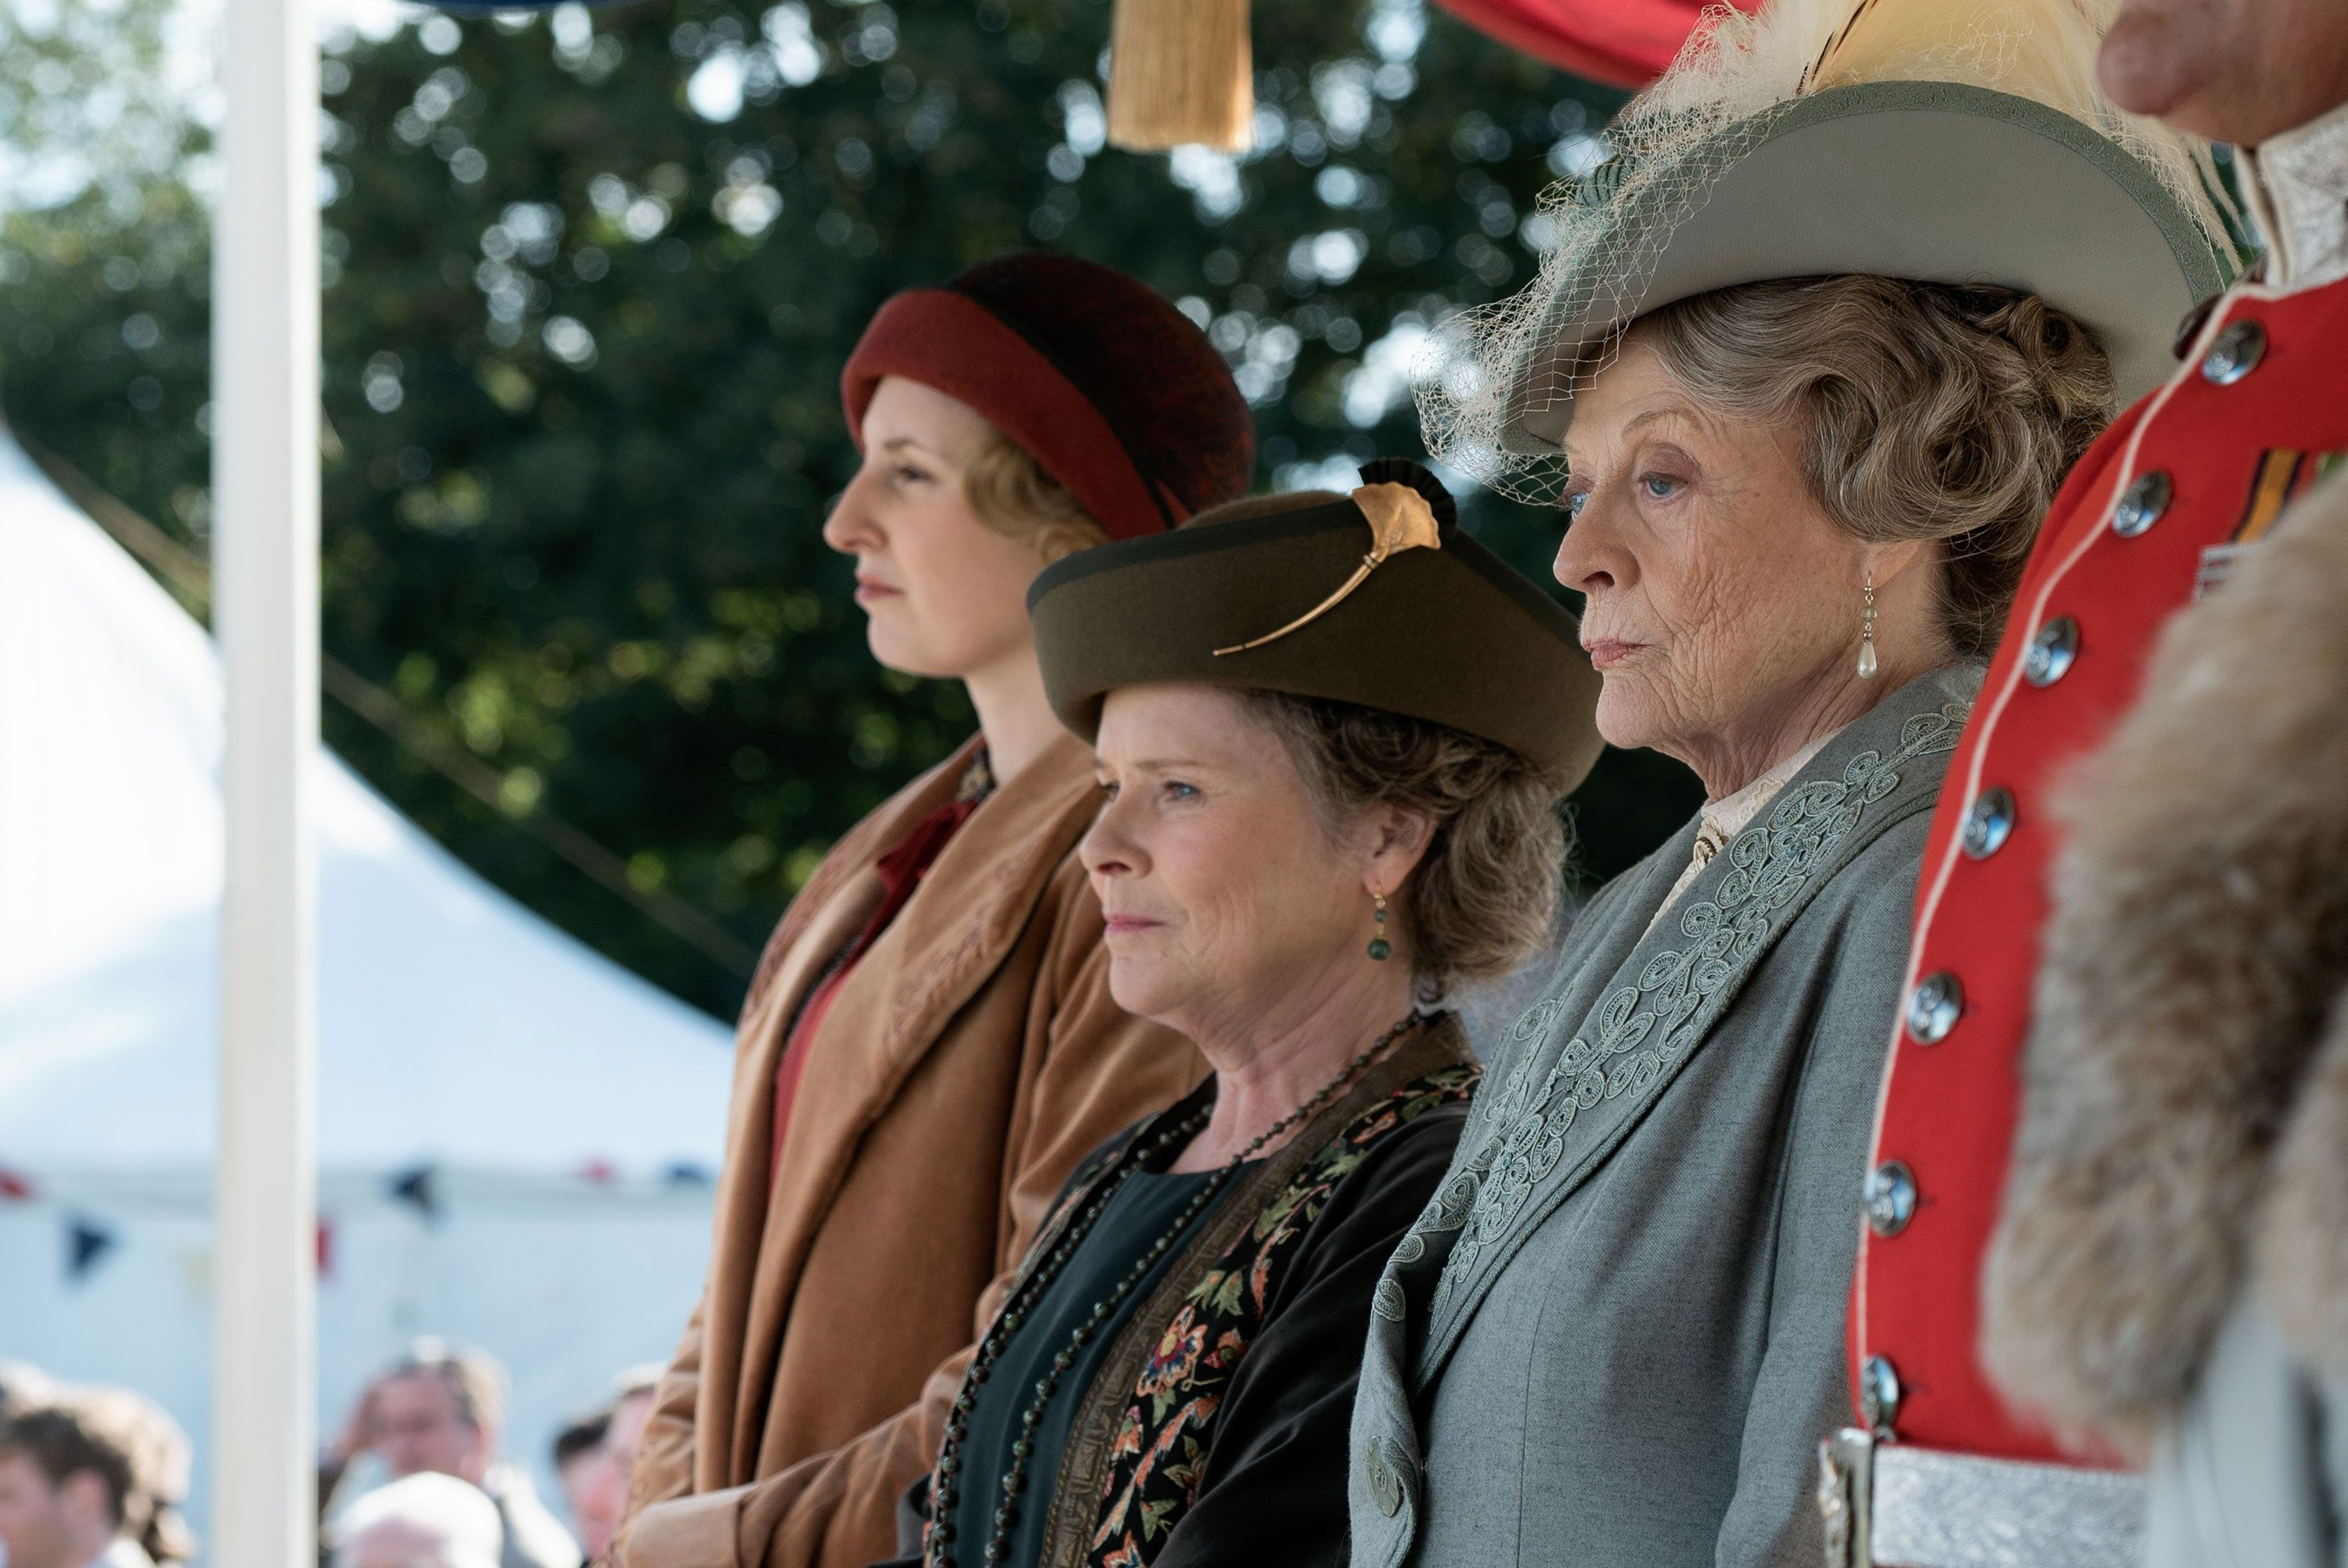 Does Maggie Smith's Dowager Countess Die in the Downton Abbey?